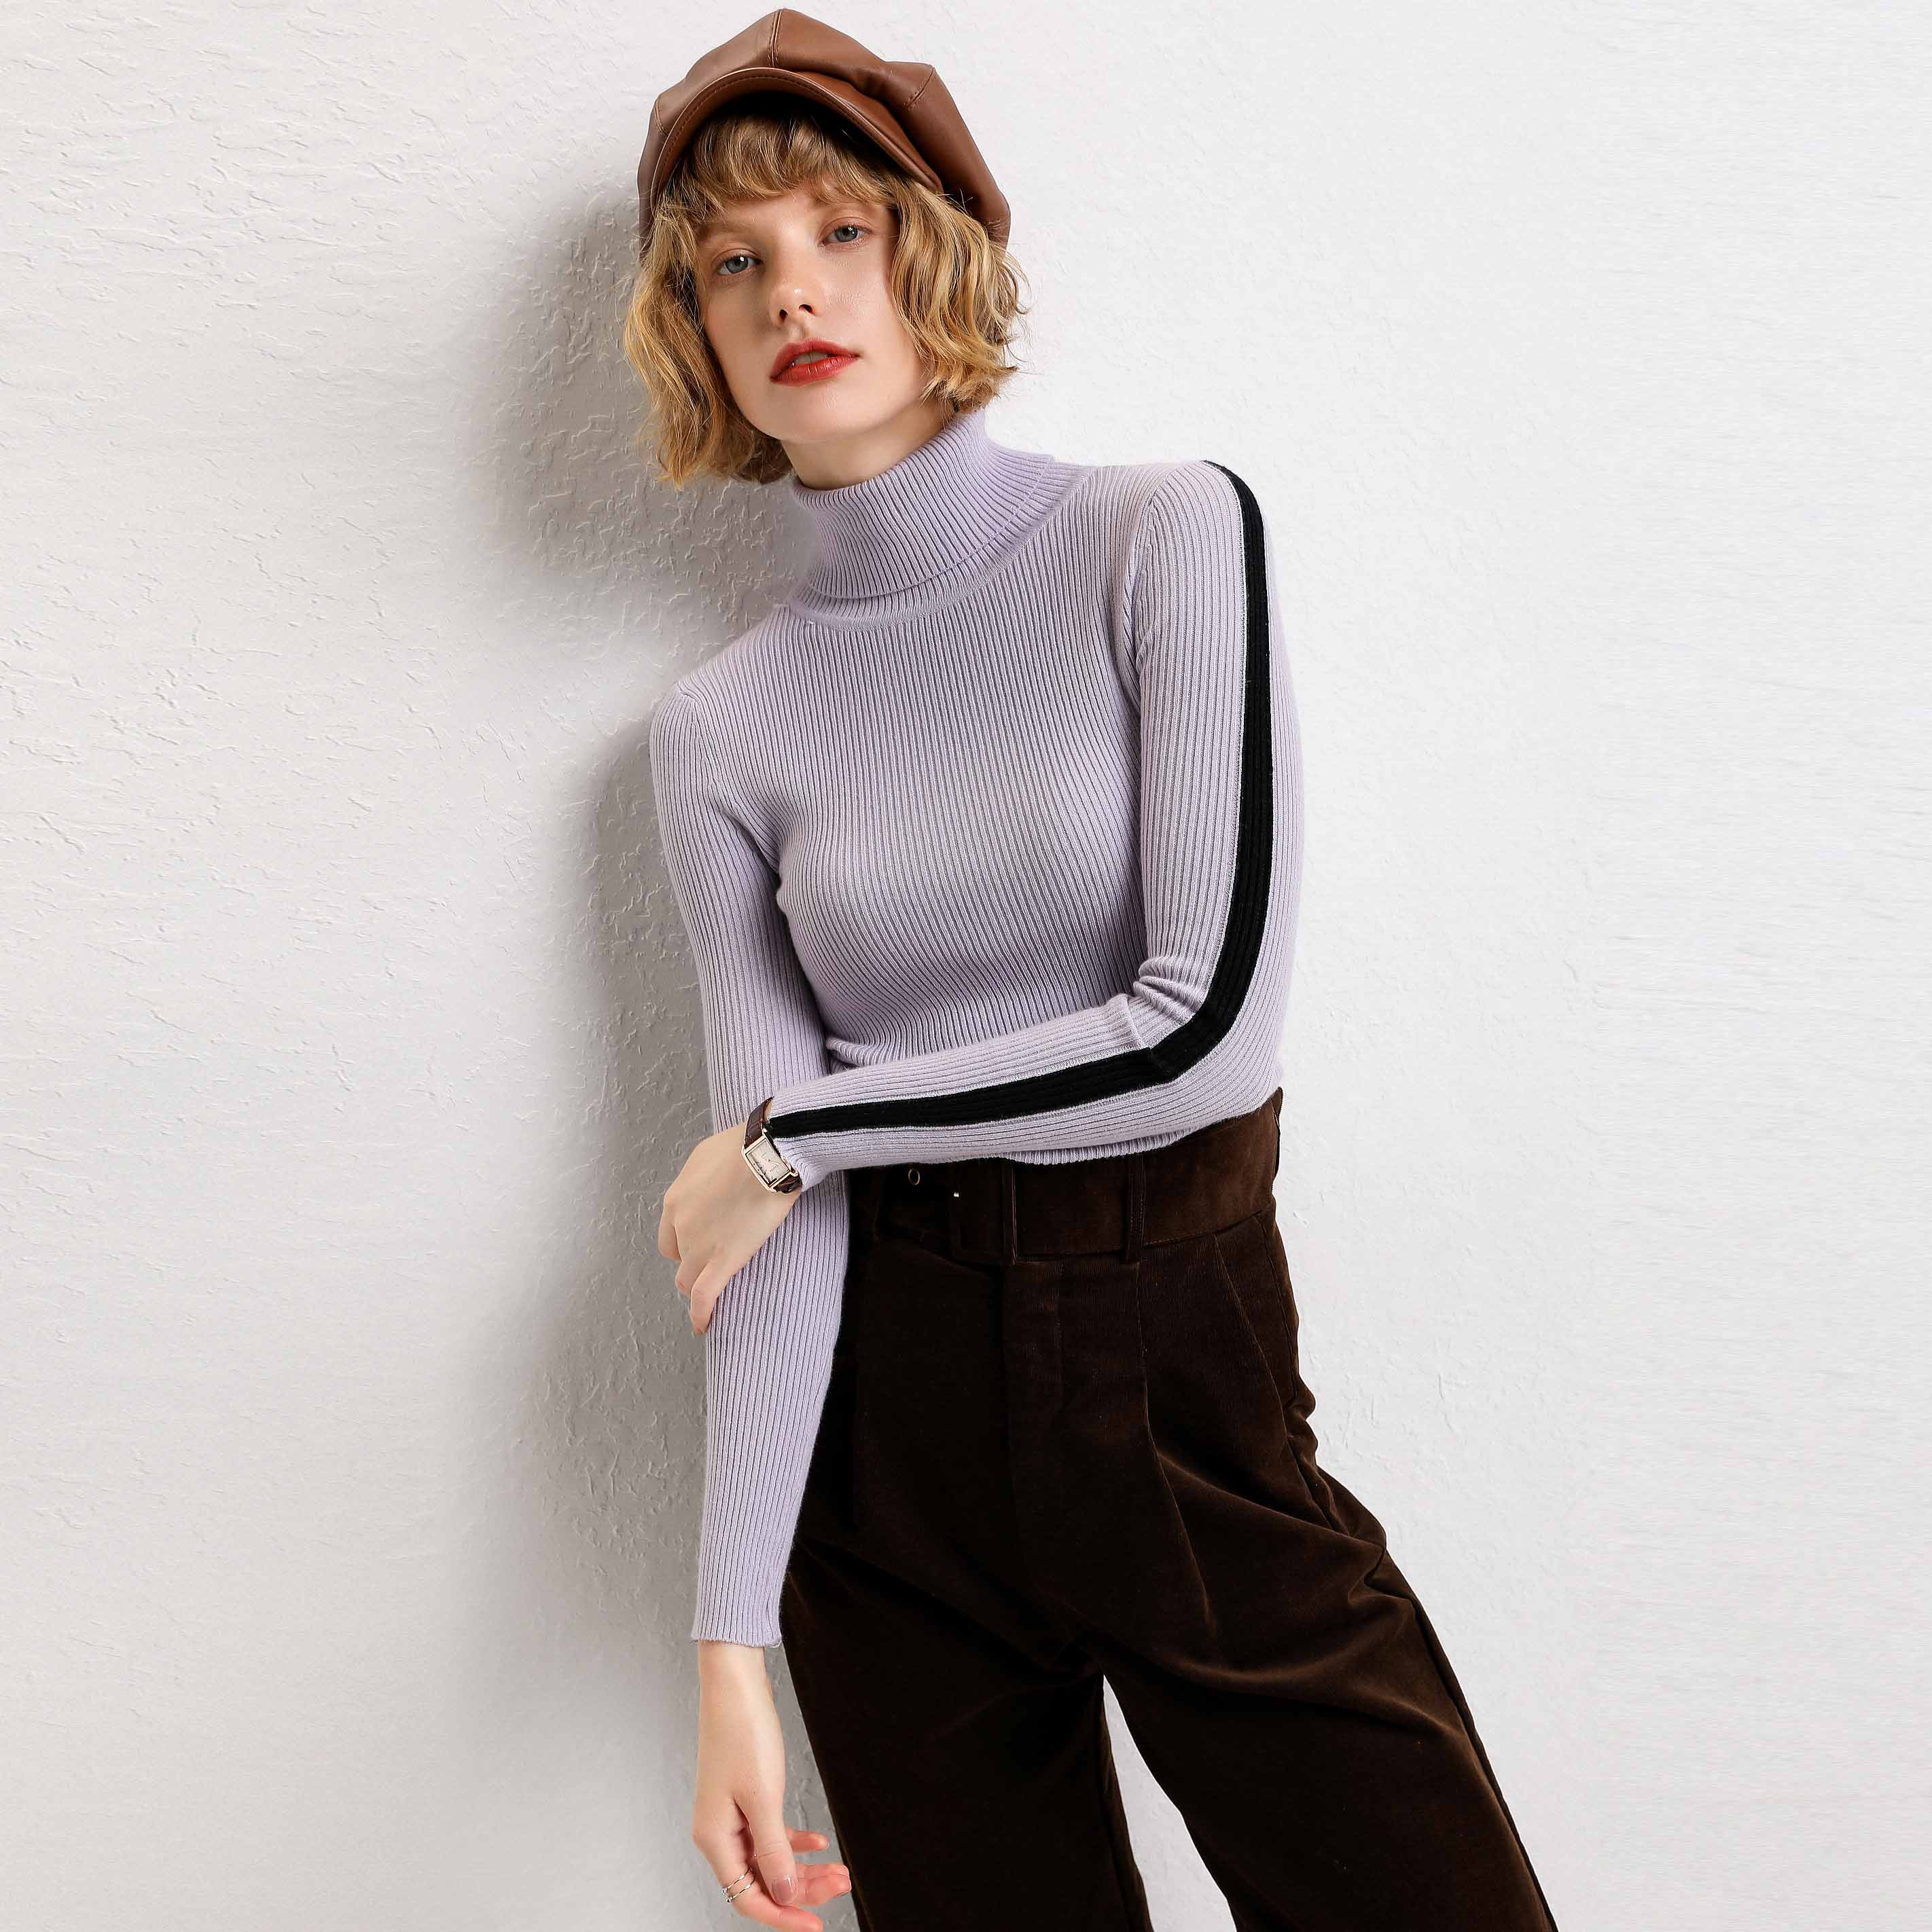 adohon 2019 woman winter 100% Cashmere sweaters and auntmun knitted Pullovers High Quality Warm Patchwork thickening Turtleneck thumbnail